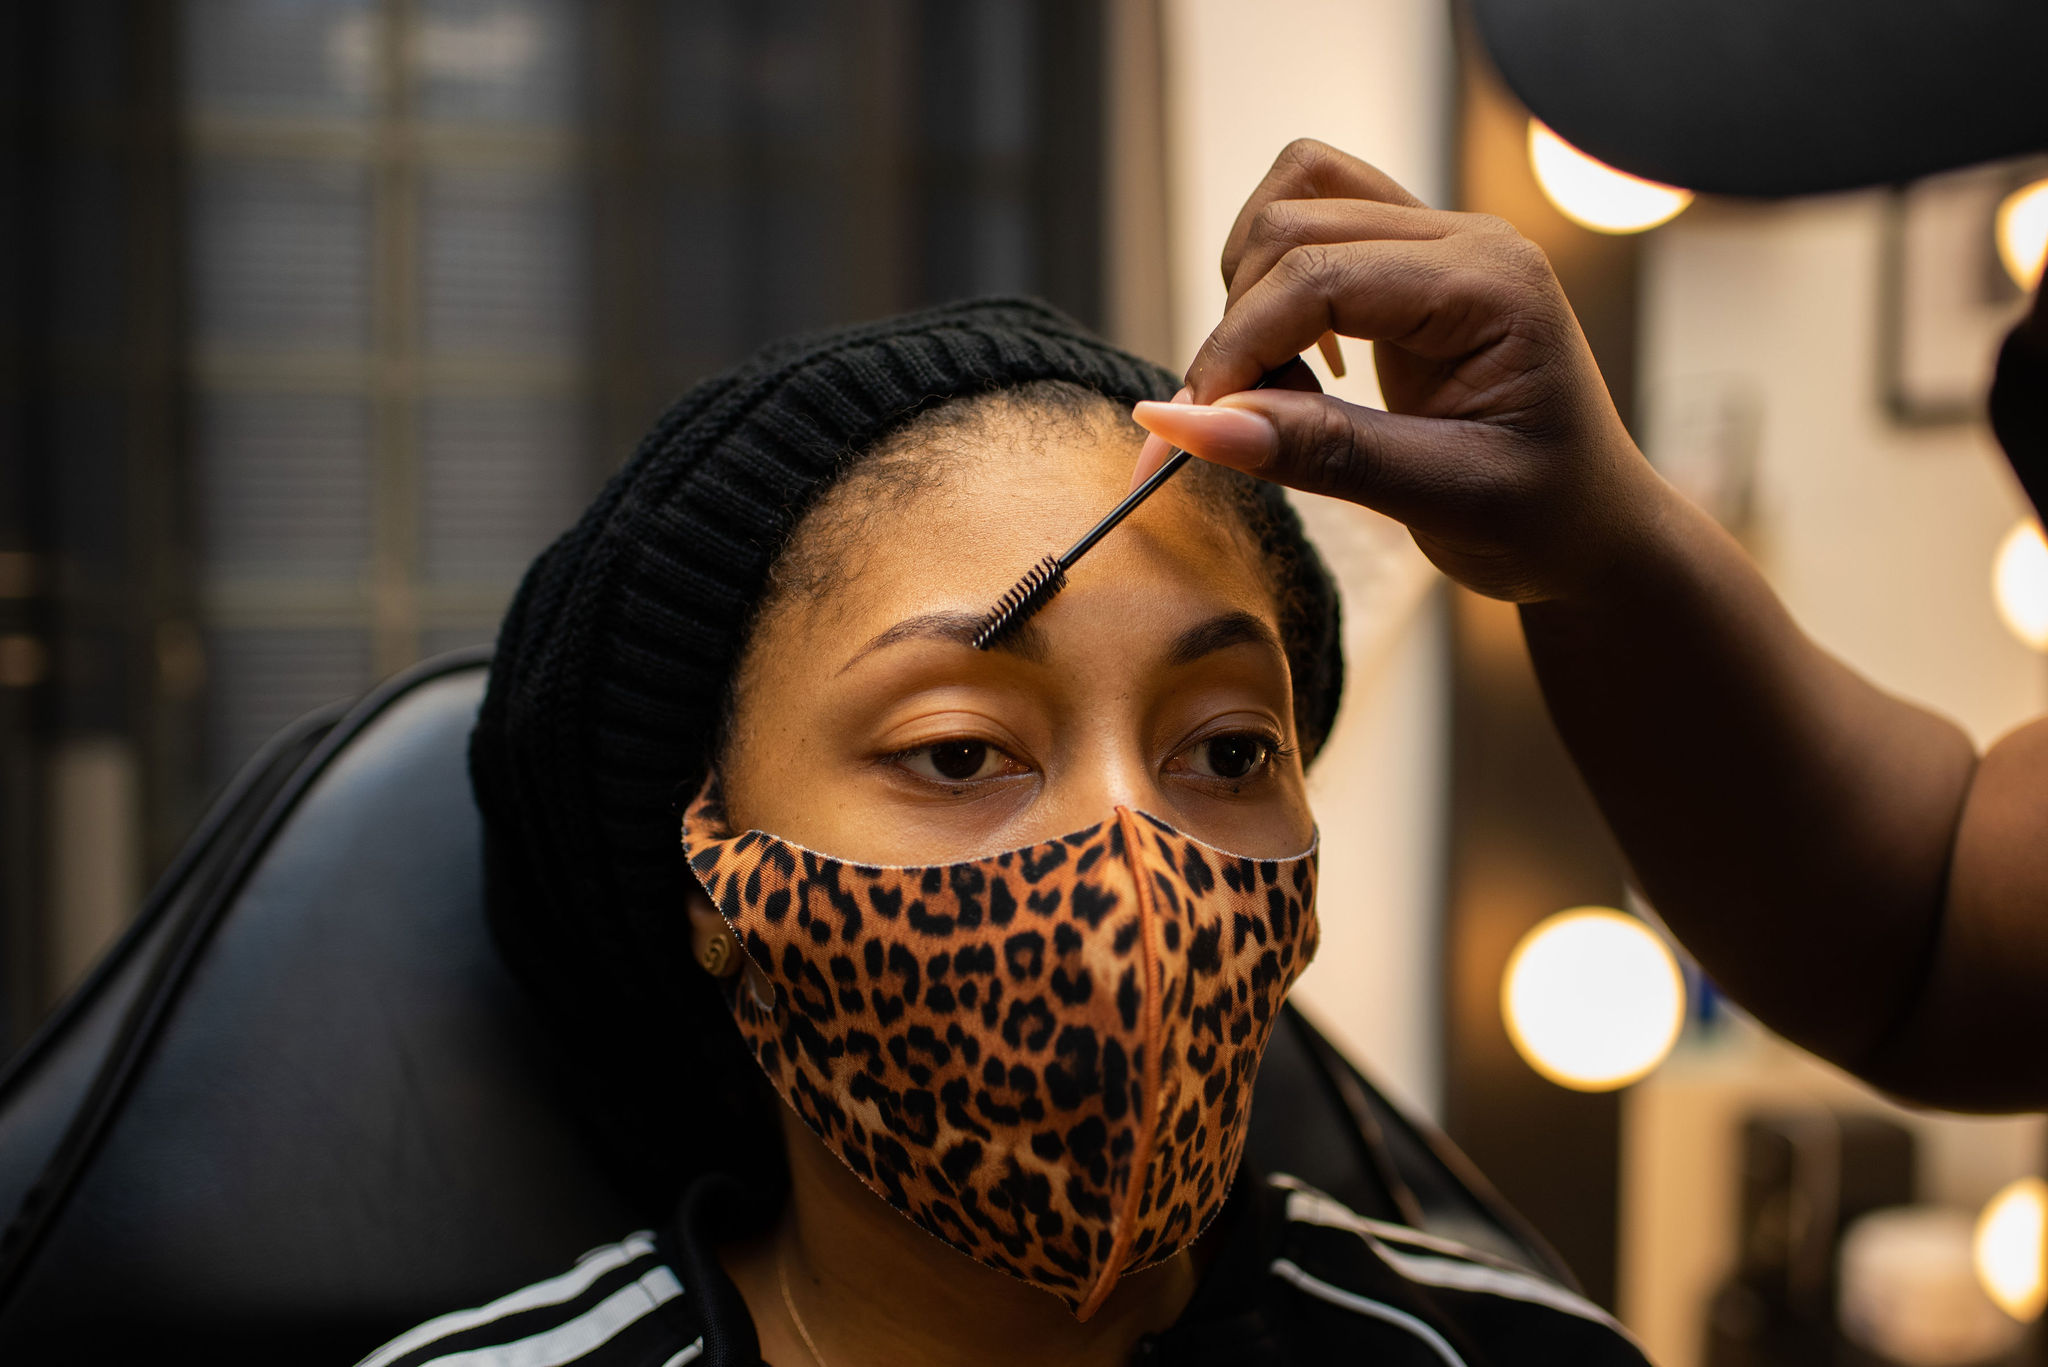 shop owner combing eyebrows before treatment